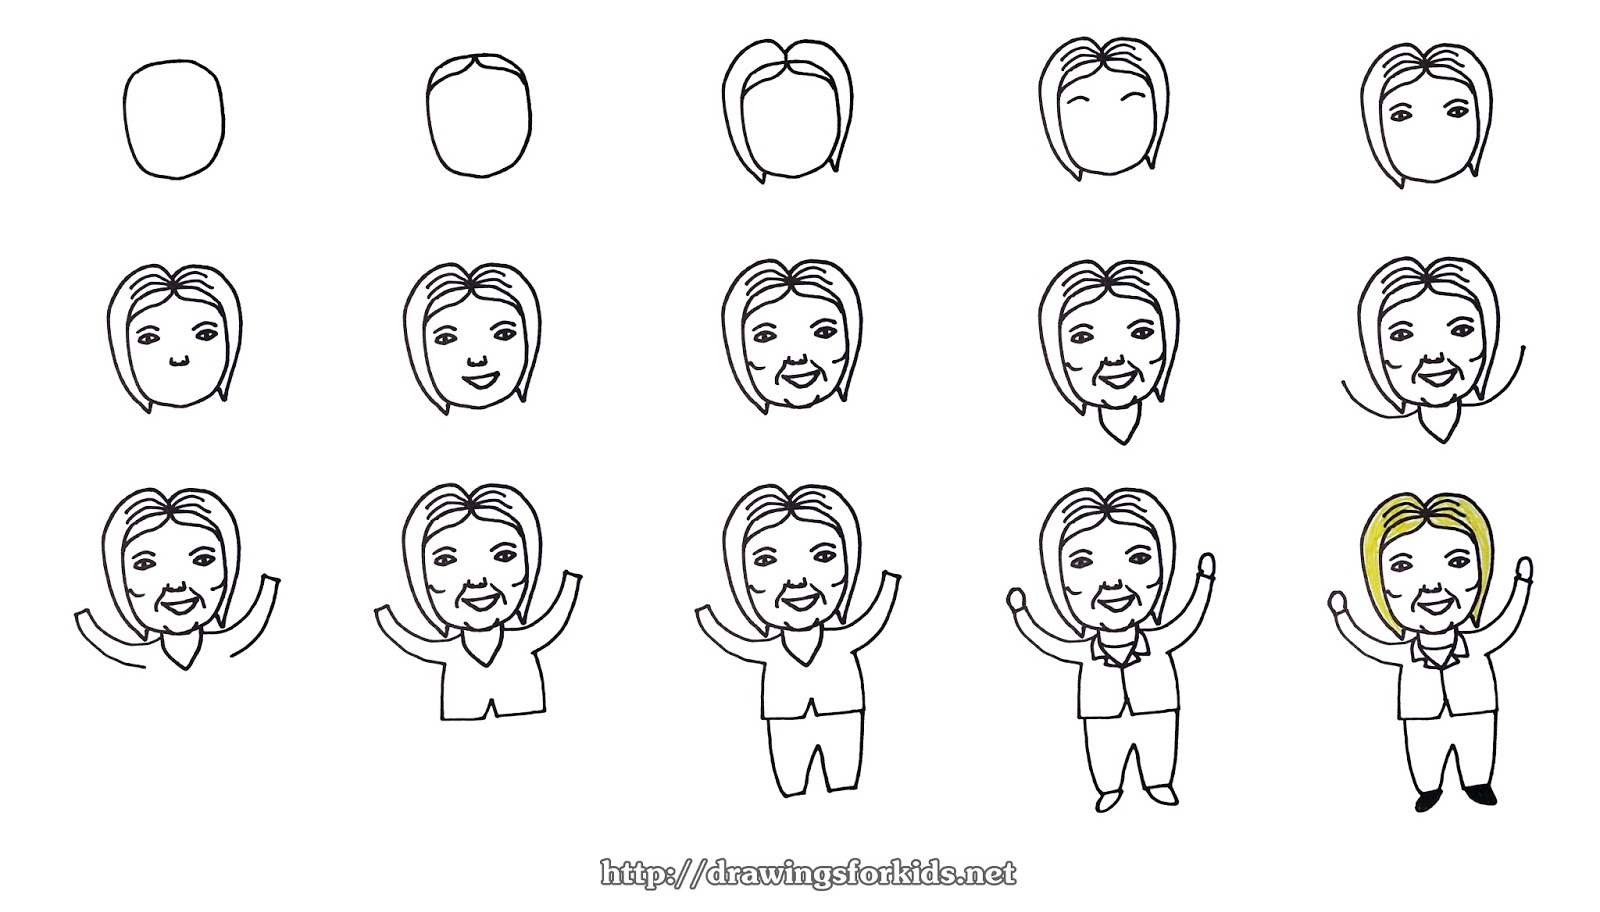 Unique How to draw Hillary Clinton for kids - drawingsforkids.net VQ16